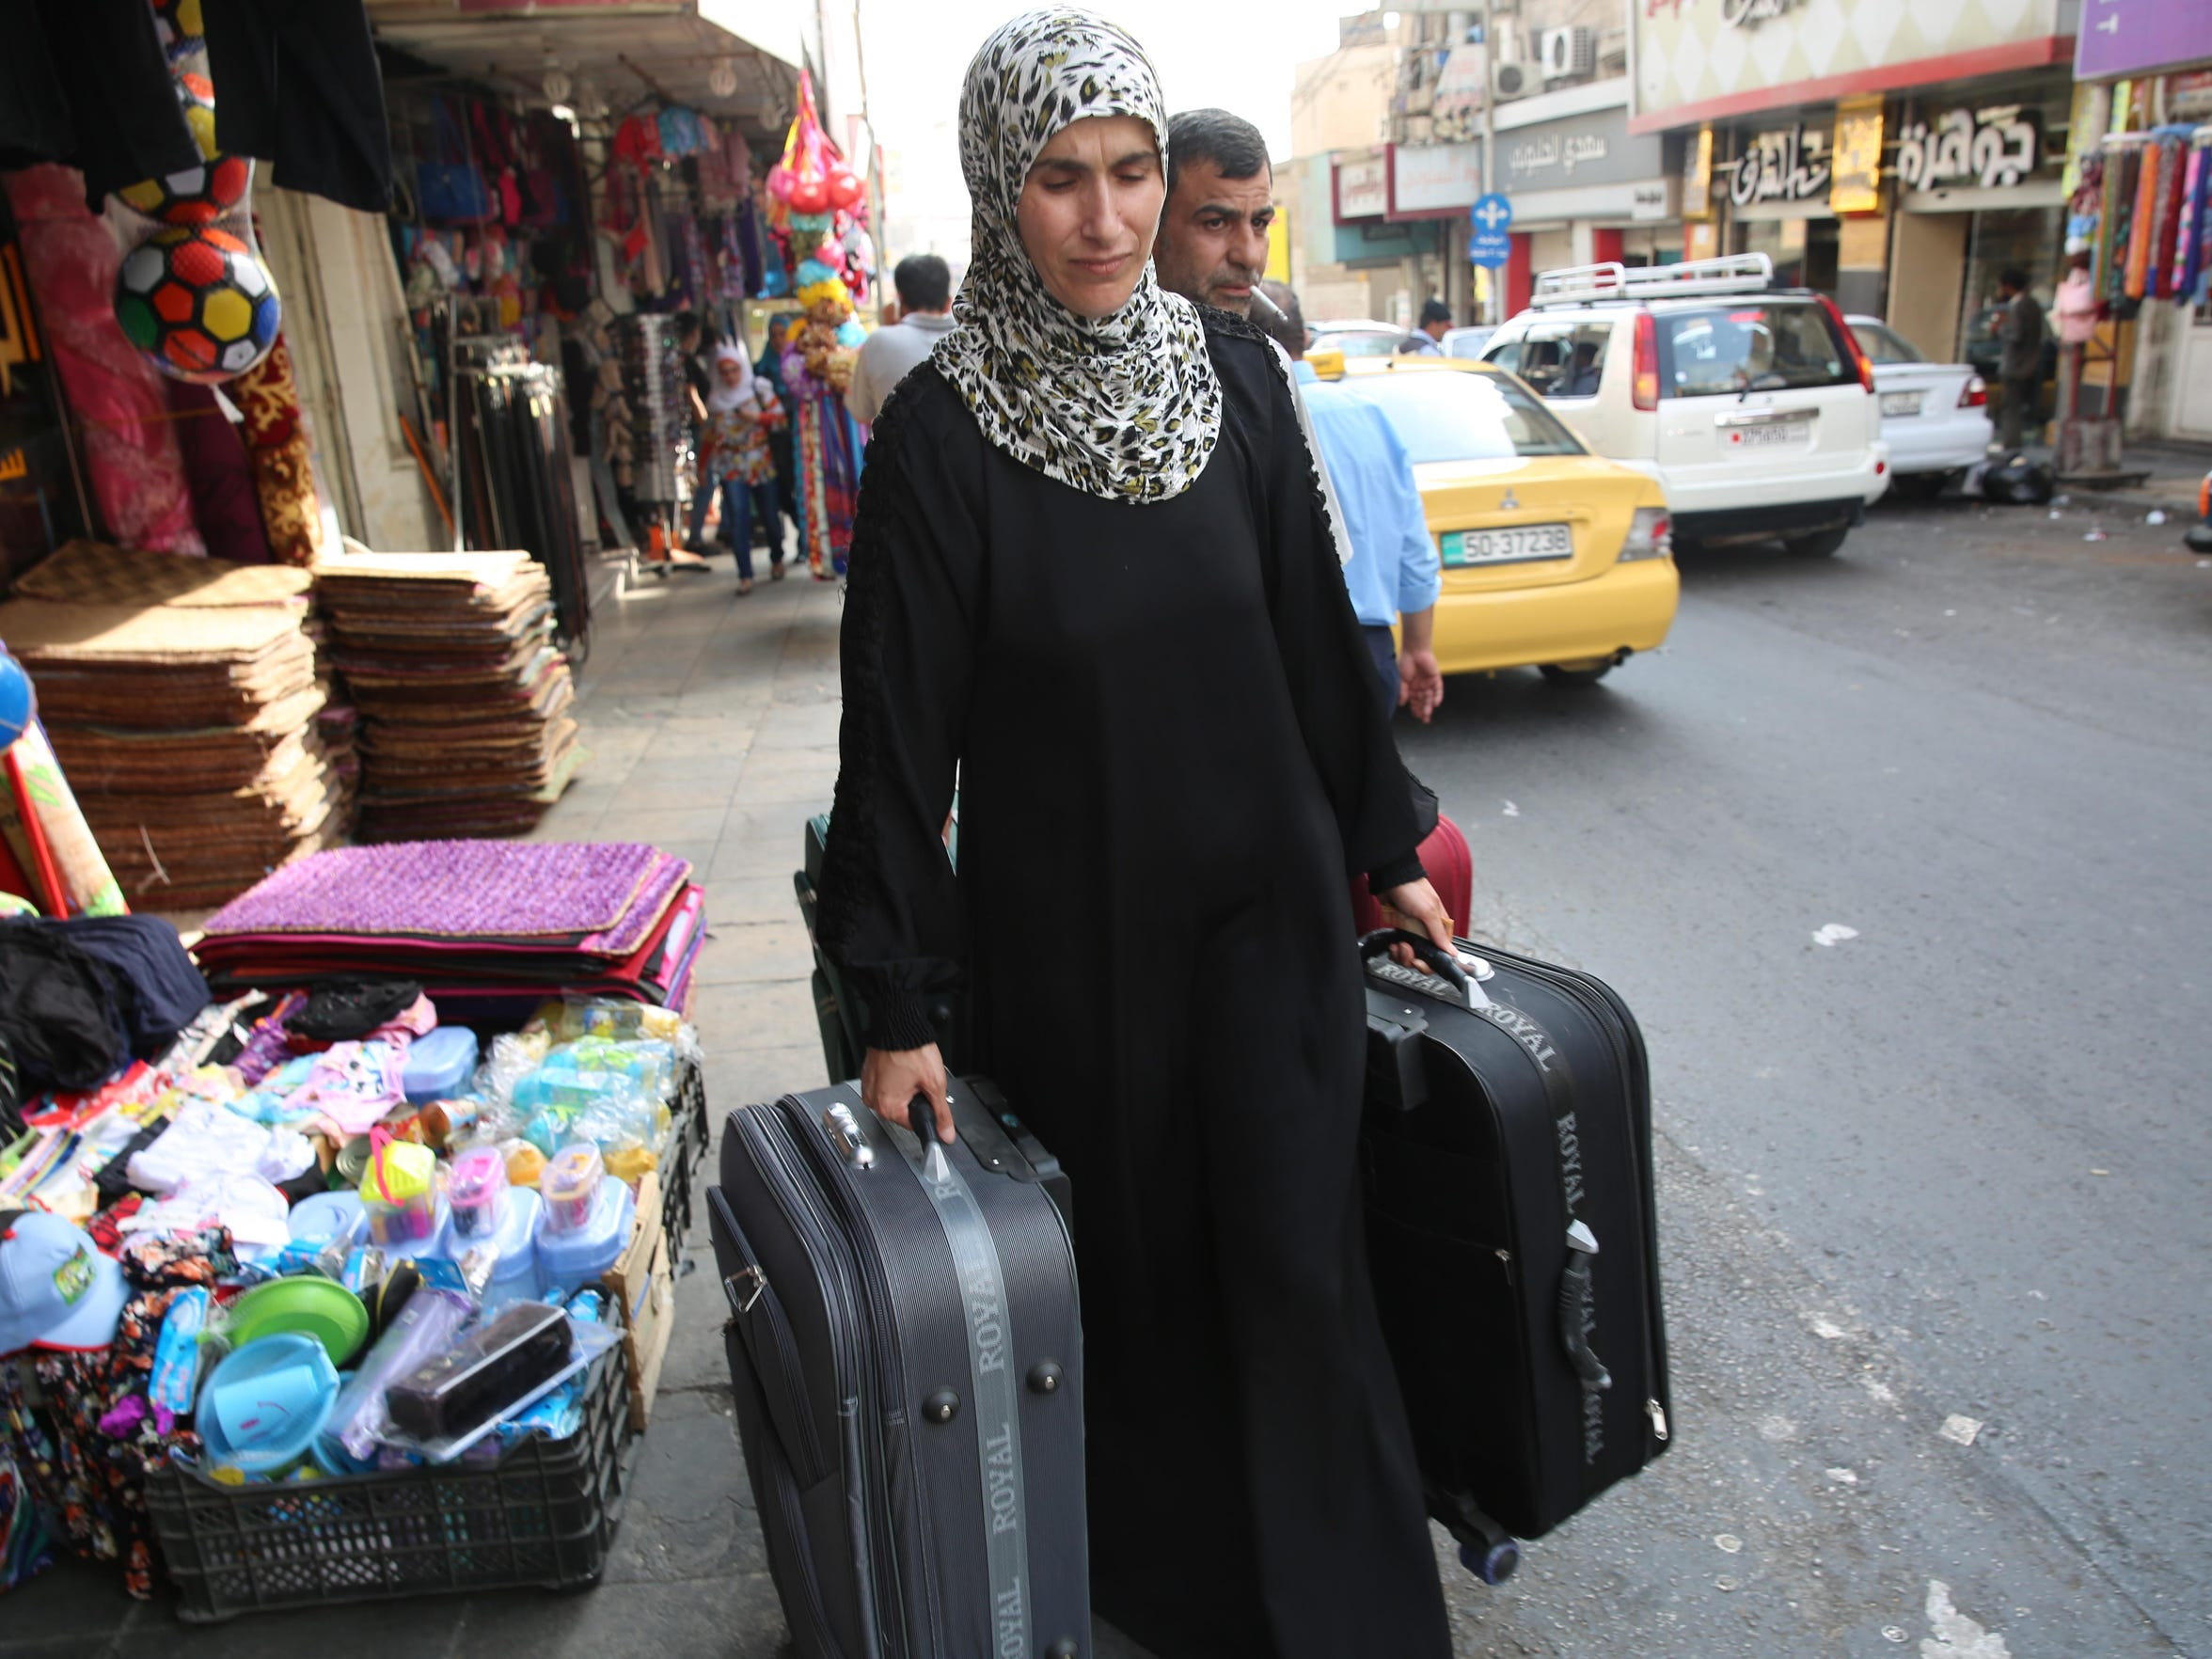 Ahmad Al Tybawi and his wife, Ahlam Al Swedan, carried the bags they'd purchased in the market area of Irbid, Jordan, for their move to the U.S., a rare shot at resettlement.